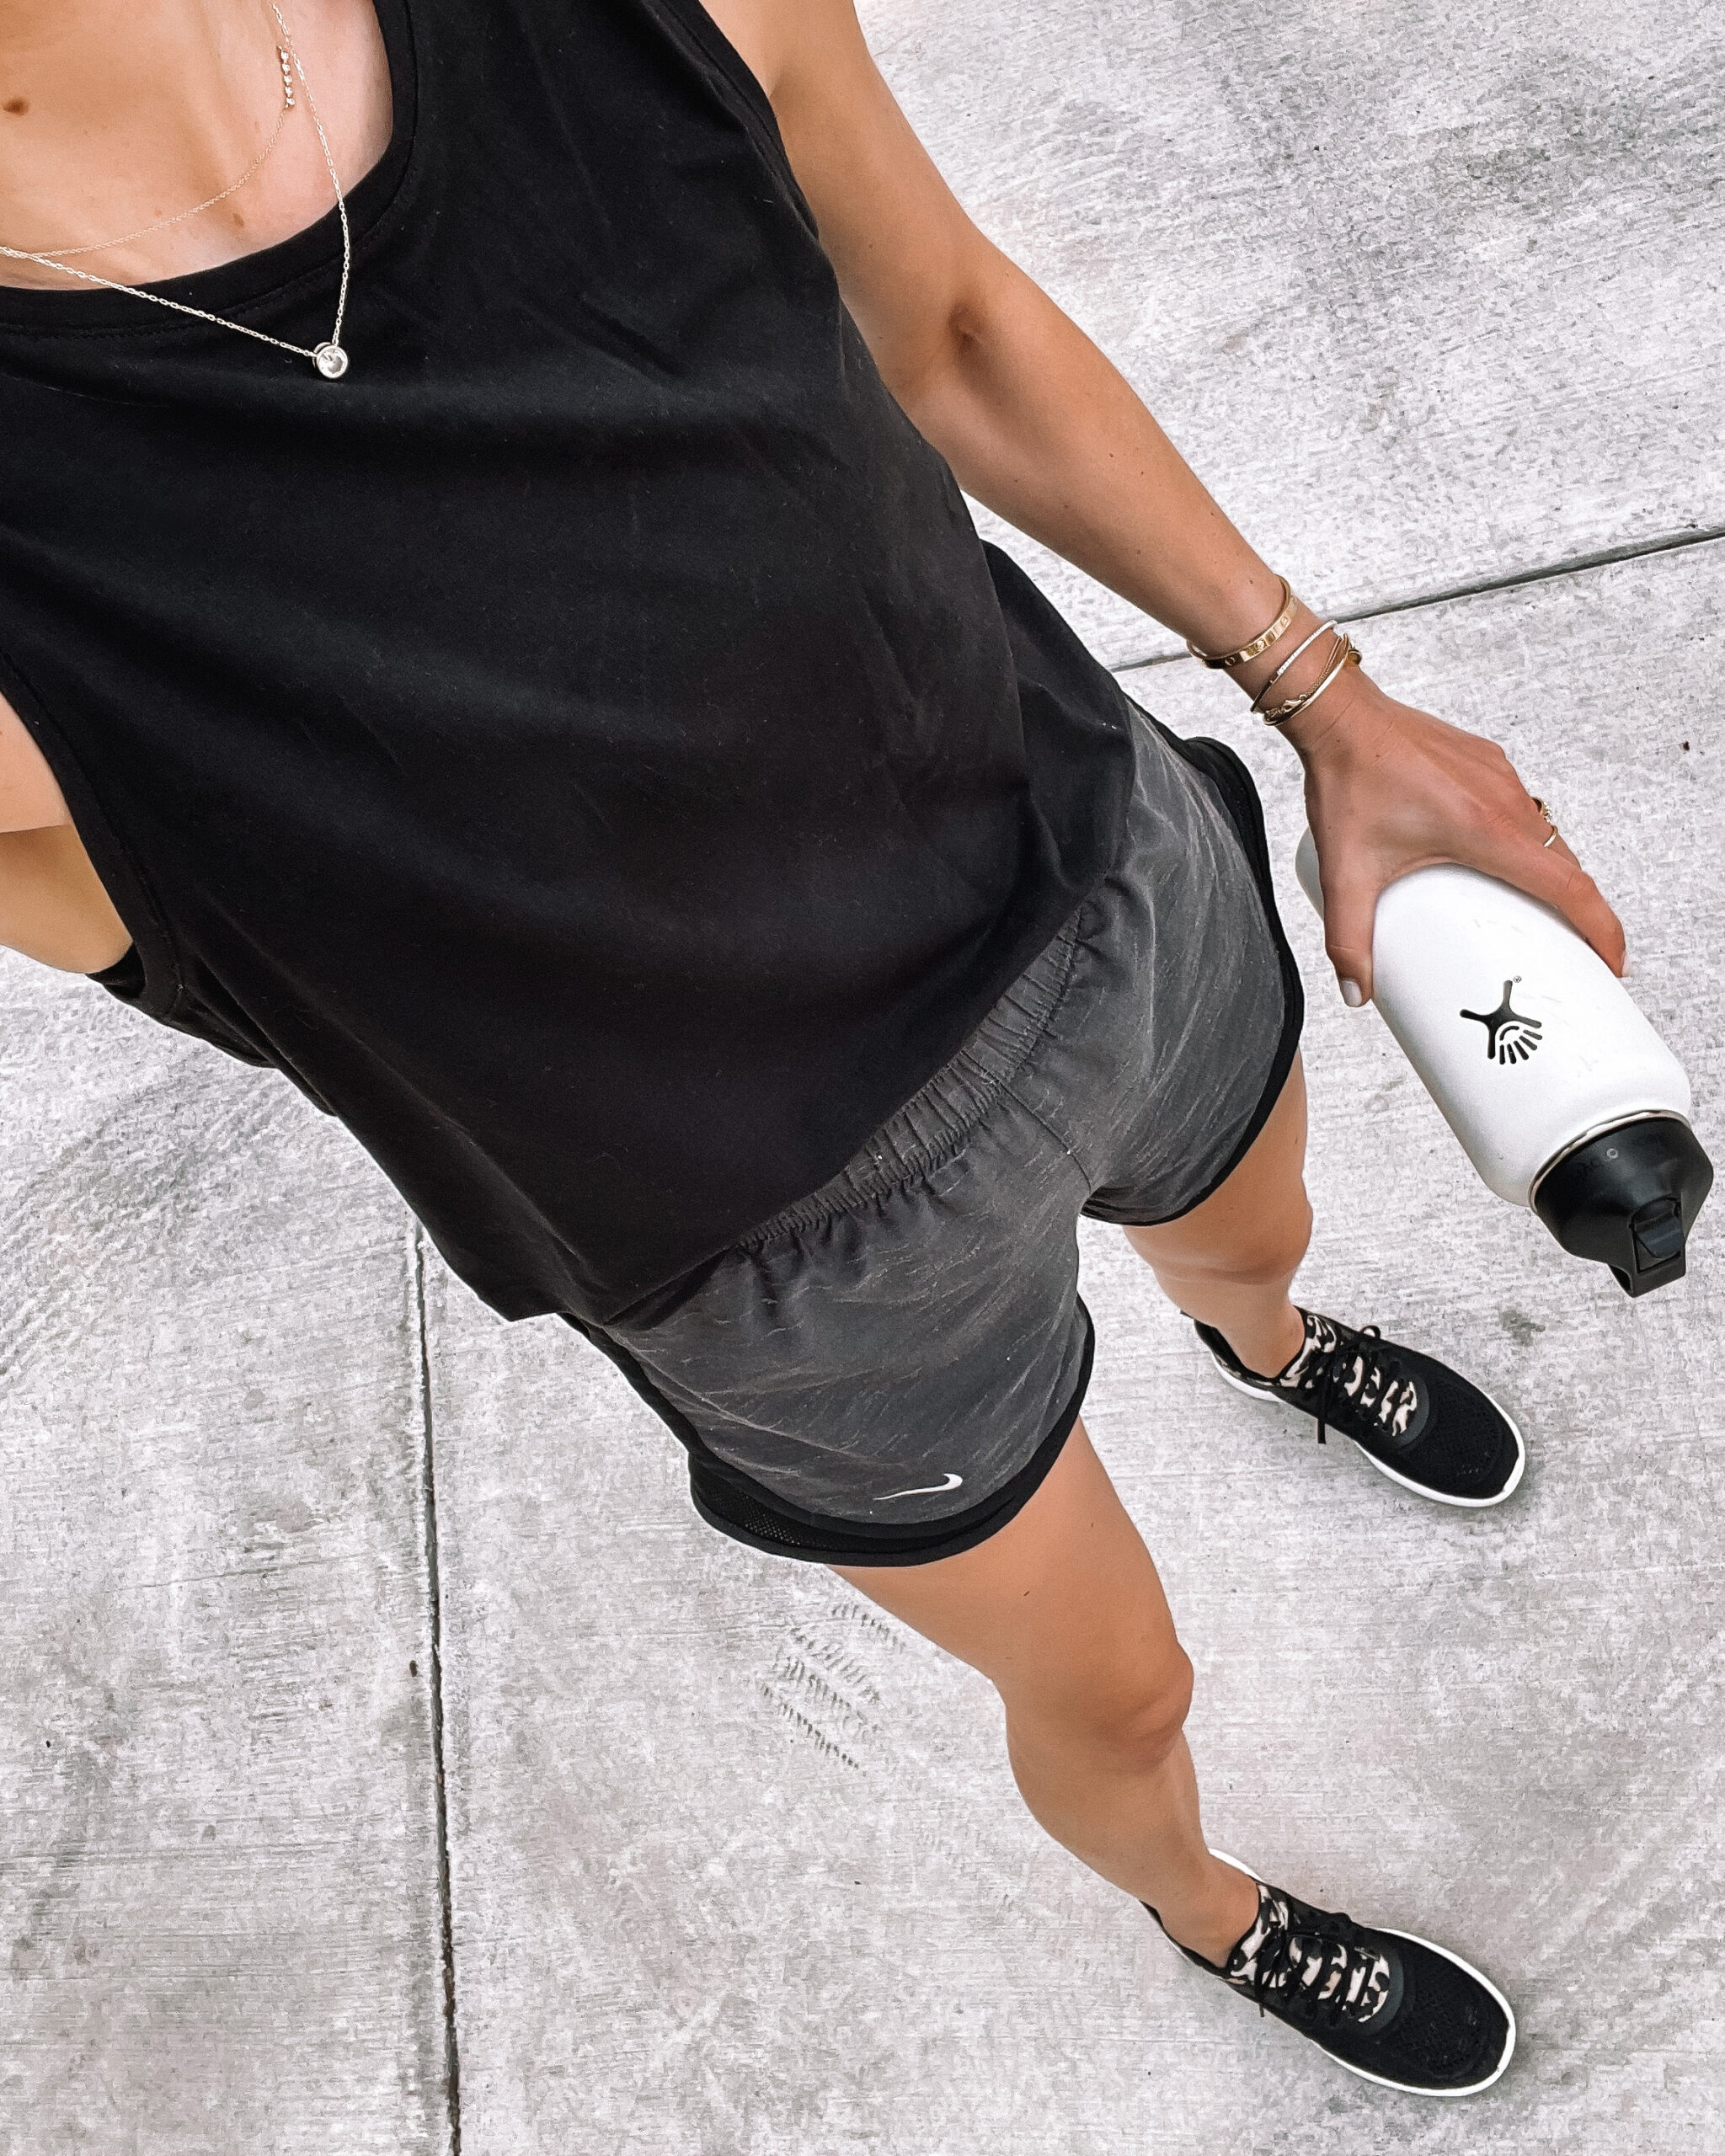 Fashion Jackson Wearing Black Workout Tank Nike Running Shorts with Liner APL Black Leopard Sneakers White Hydroflask Womens Workout Outfit